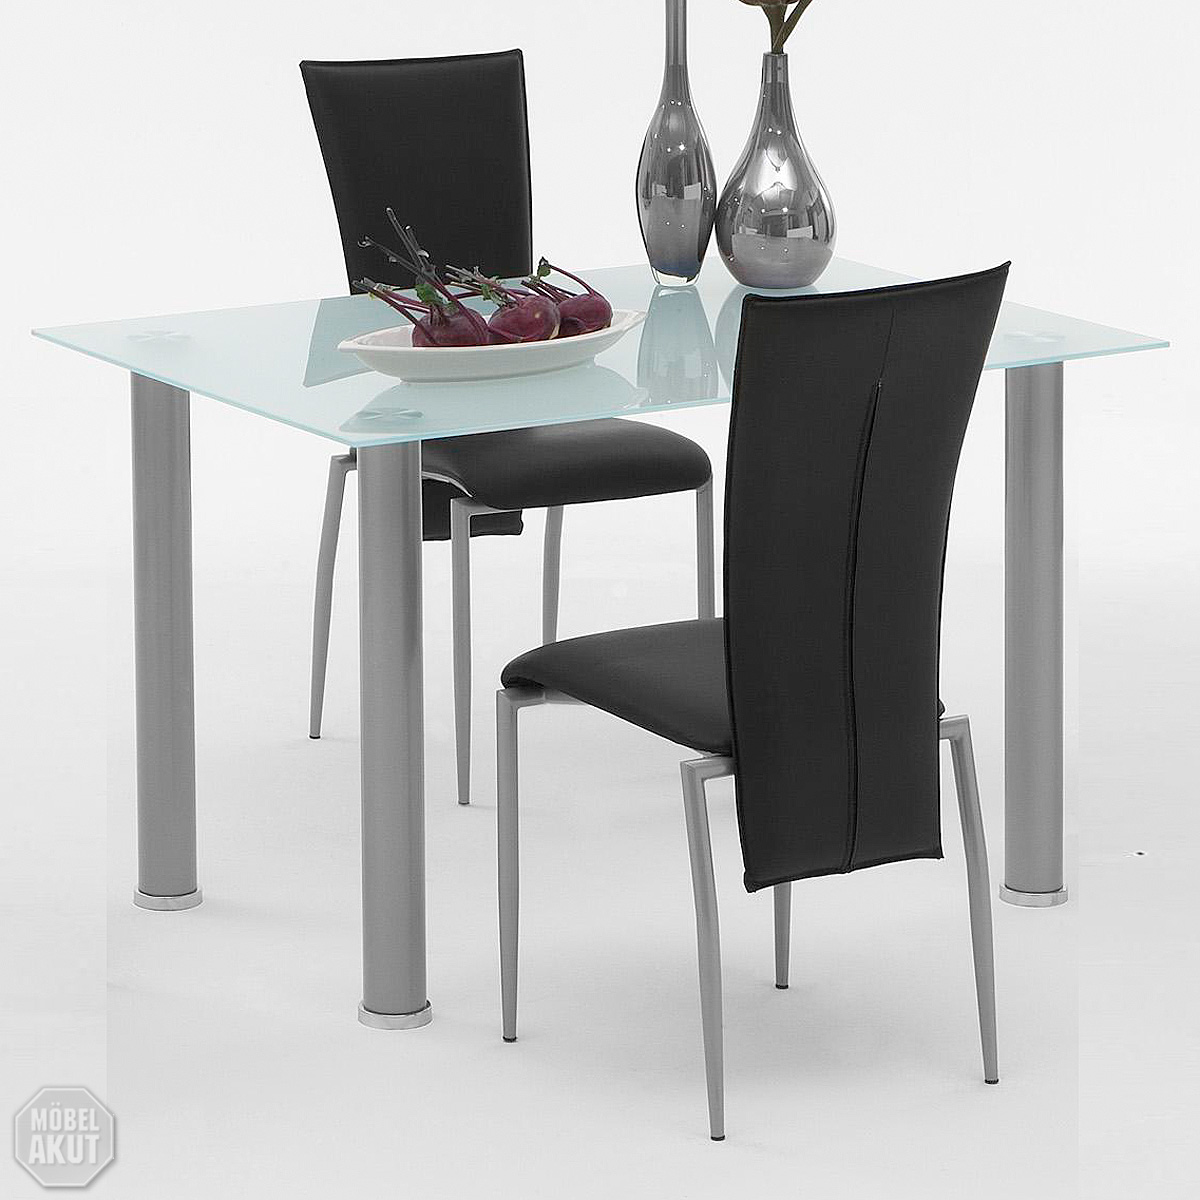 esstisch evia tisch mit milch glas alu b 120 cm ebay. Black Bedroom Furniture Sets. Home Design Ideas